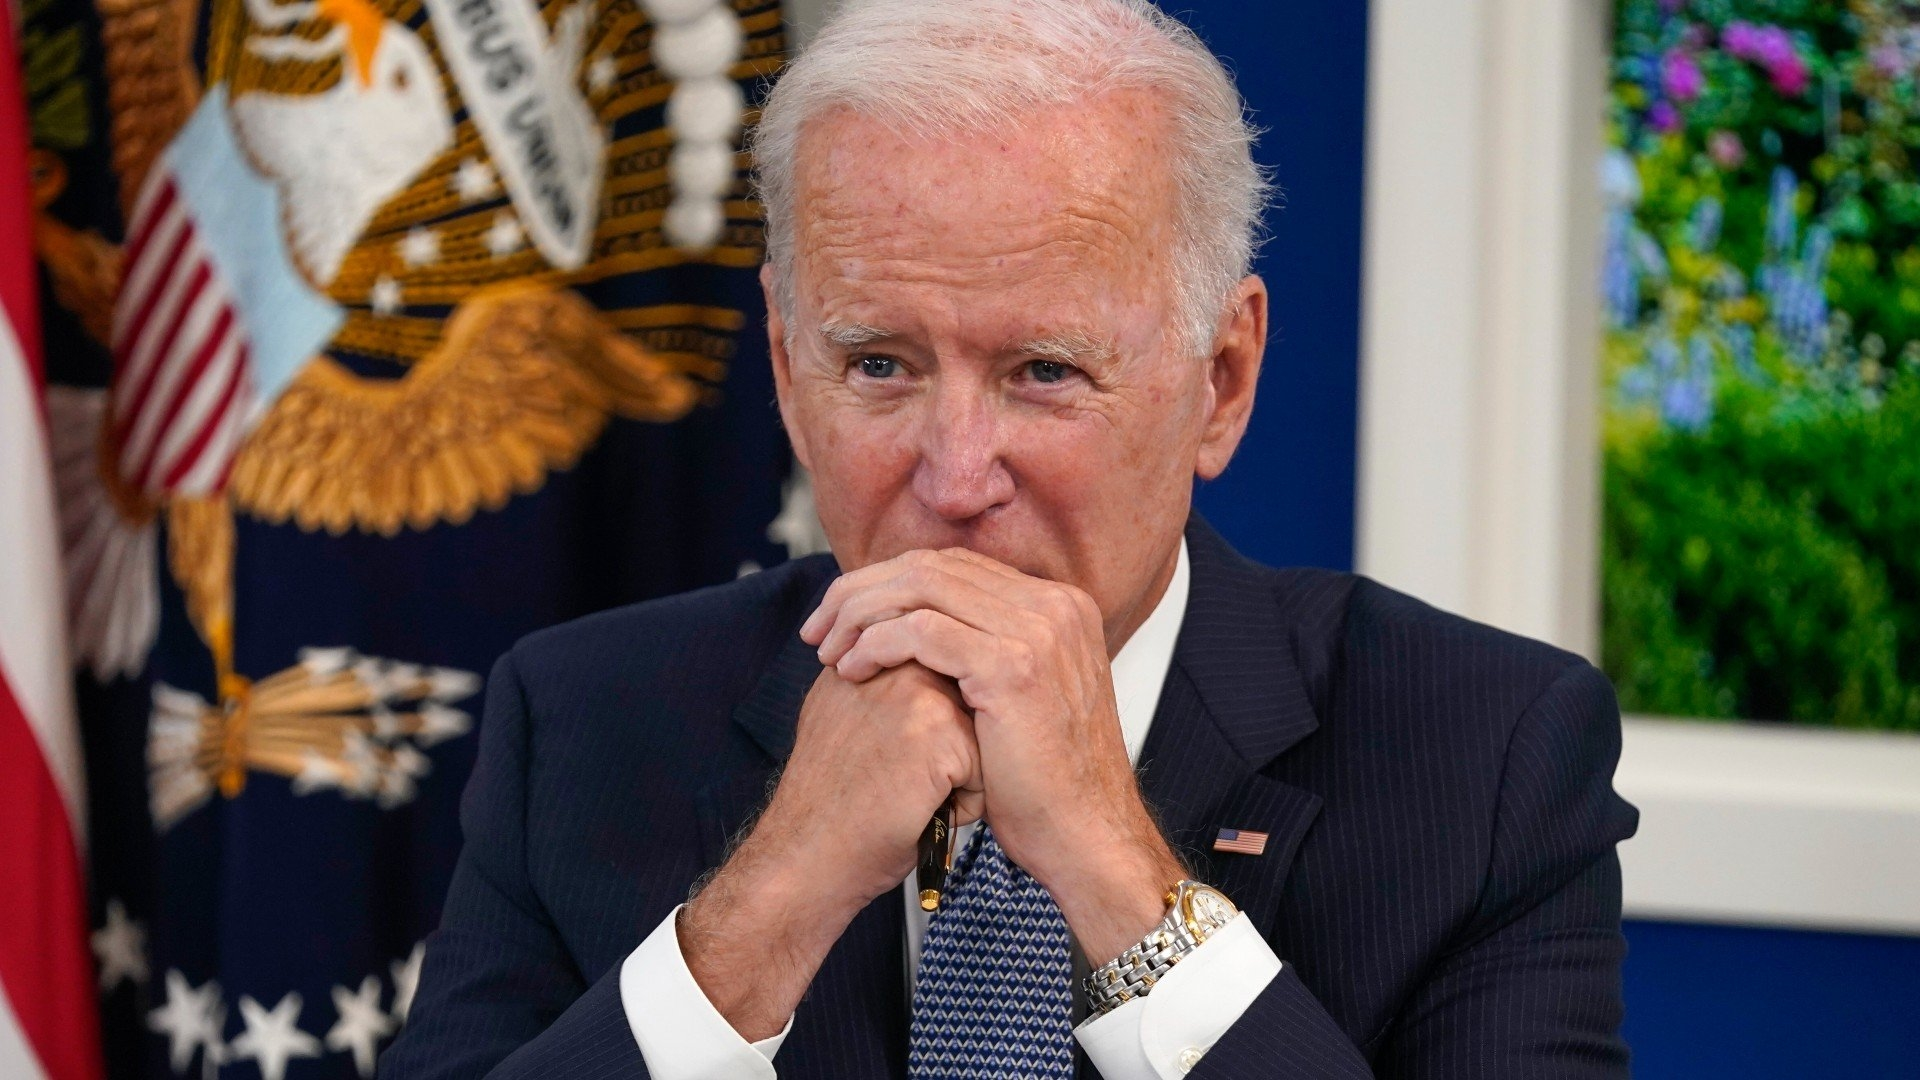 Biden, conversion to mandate, laying financial grounds for shots | Chicago News